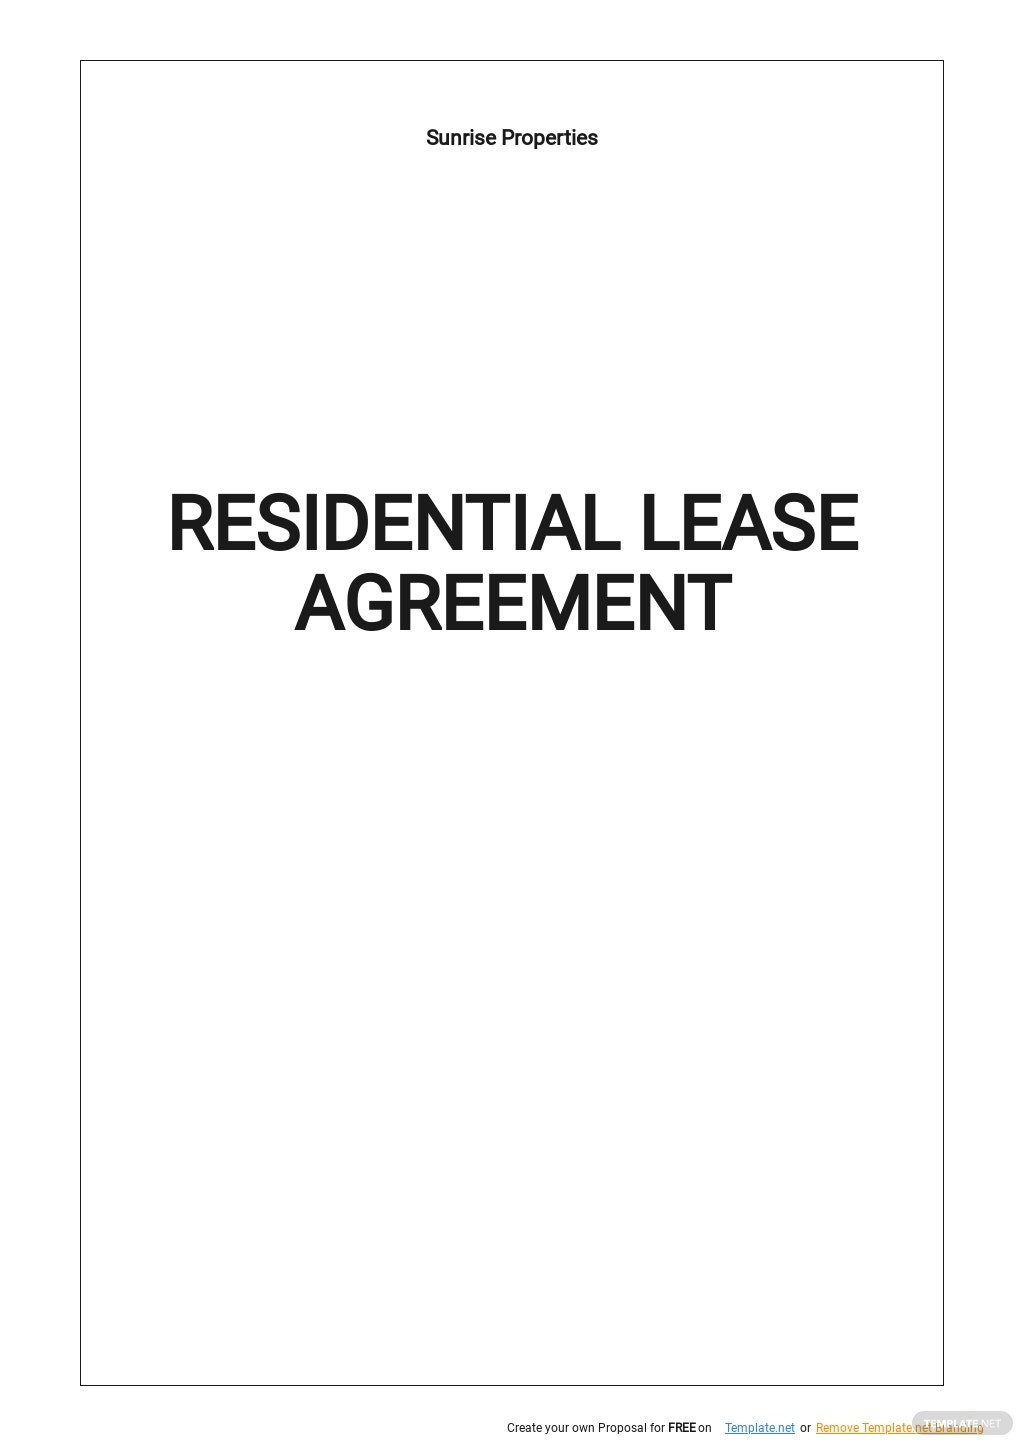 Basic Residential Lease Agreement Template.jpe